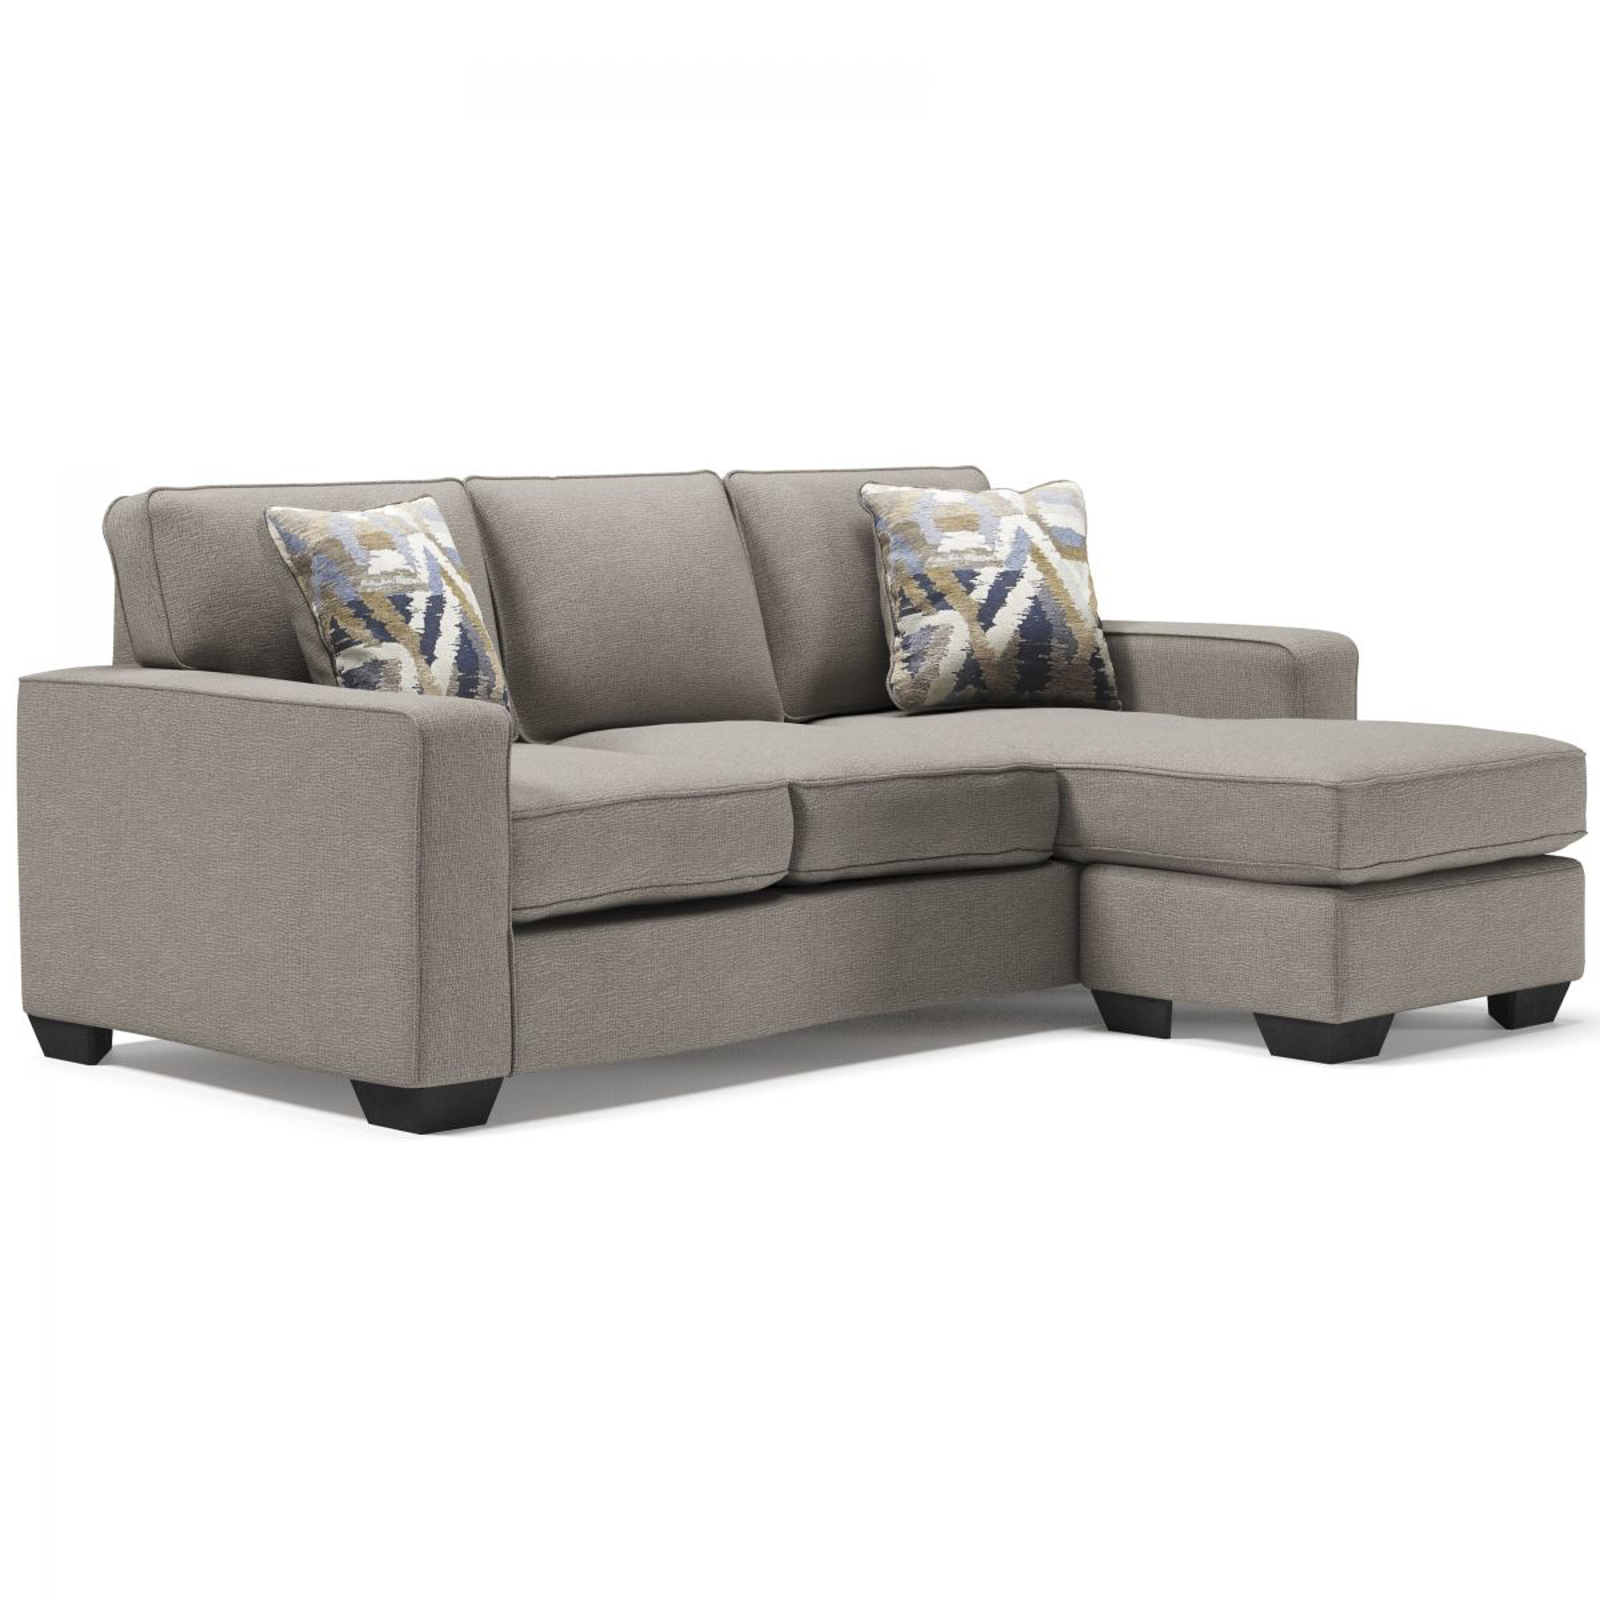 Picture of Greaves Sofa Chaise